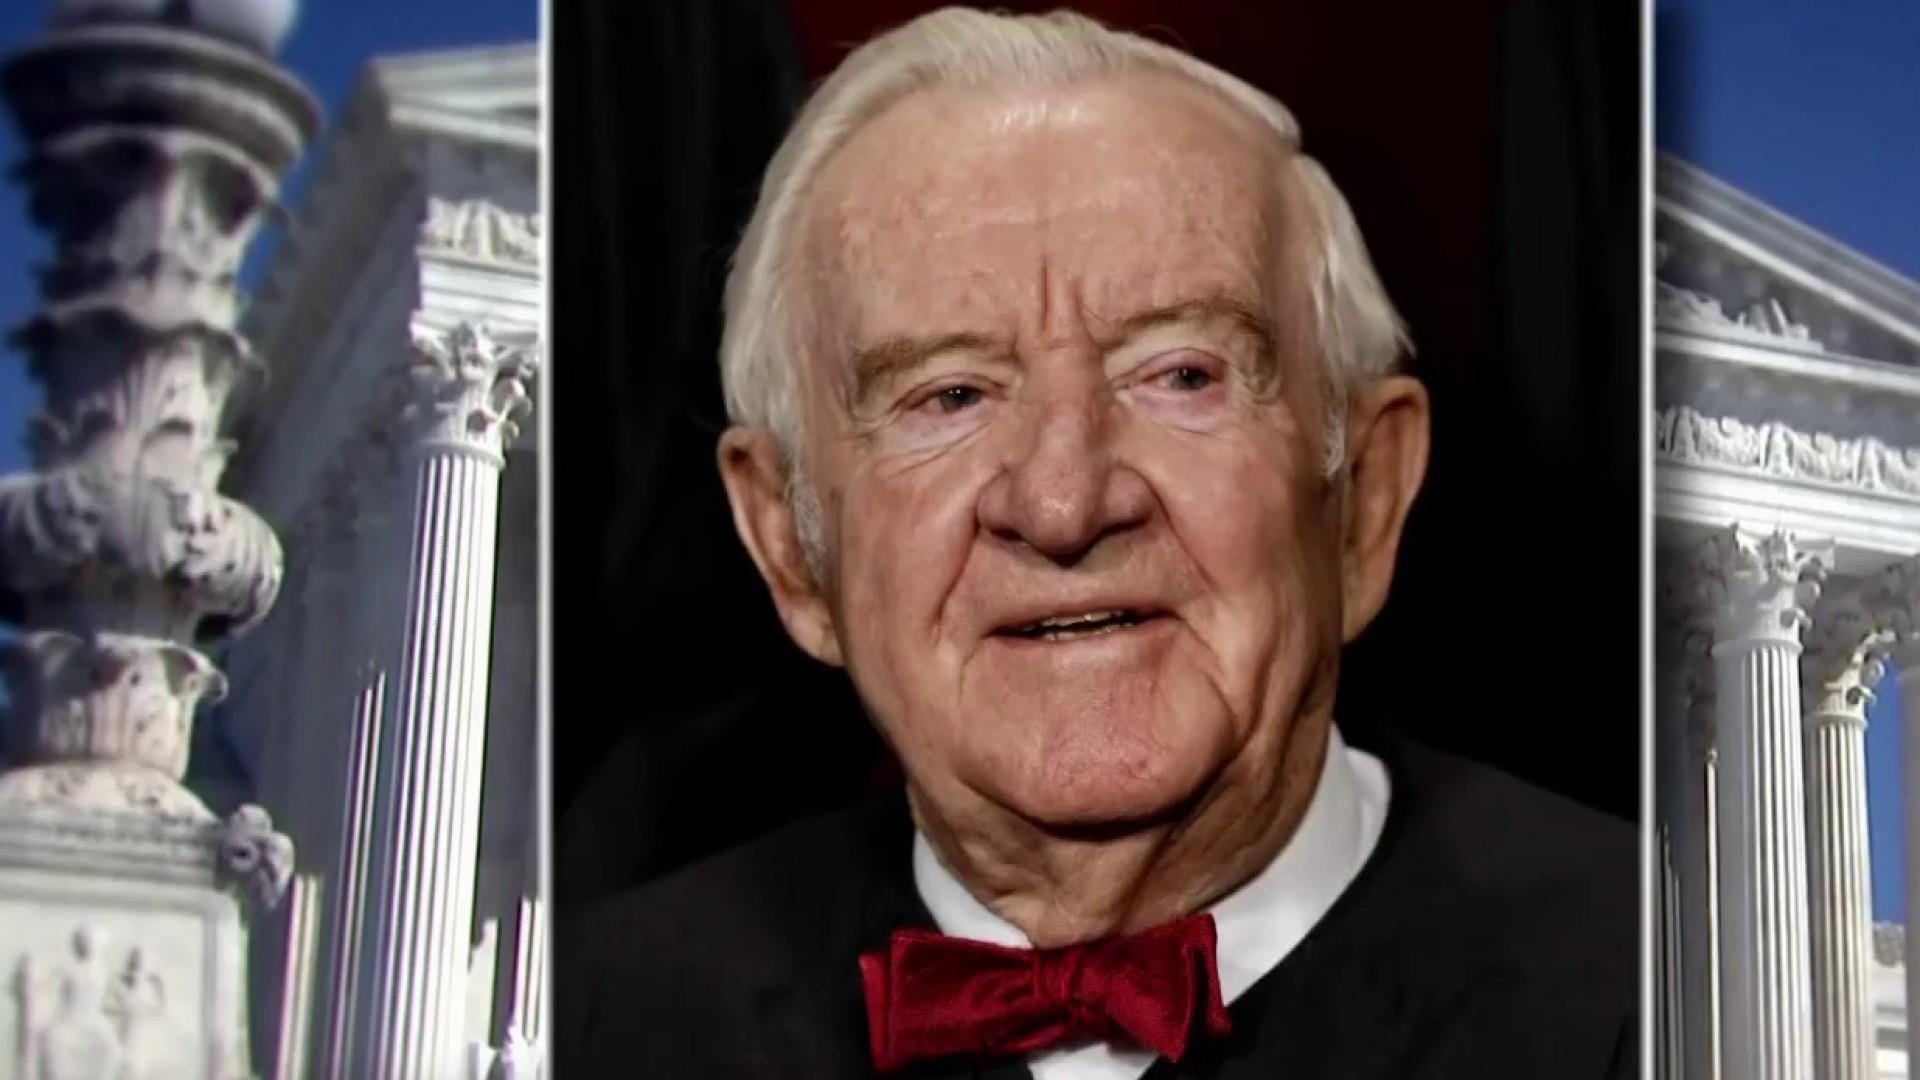 Former Supreme Court Justice John Paul Stevens dead at 99